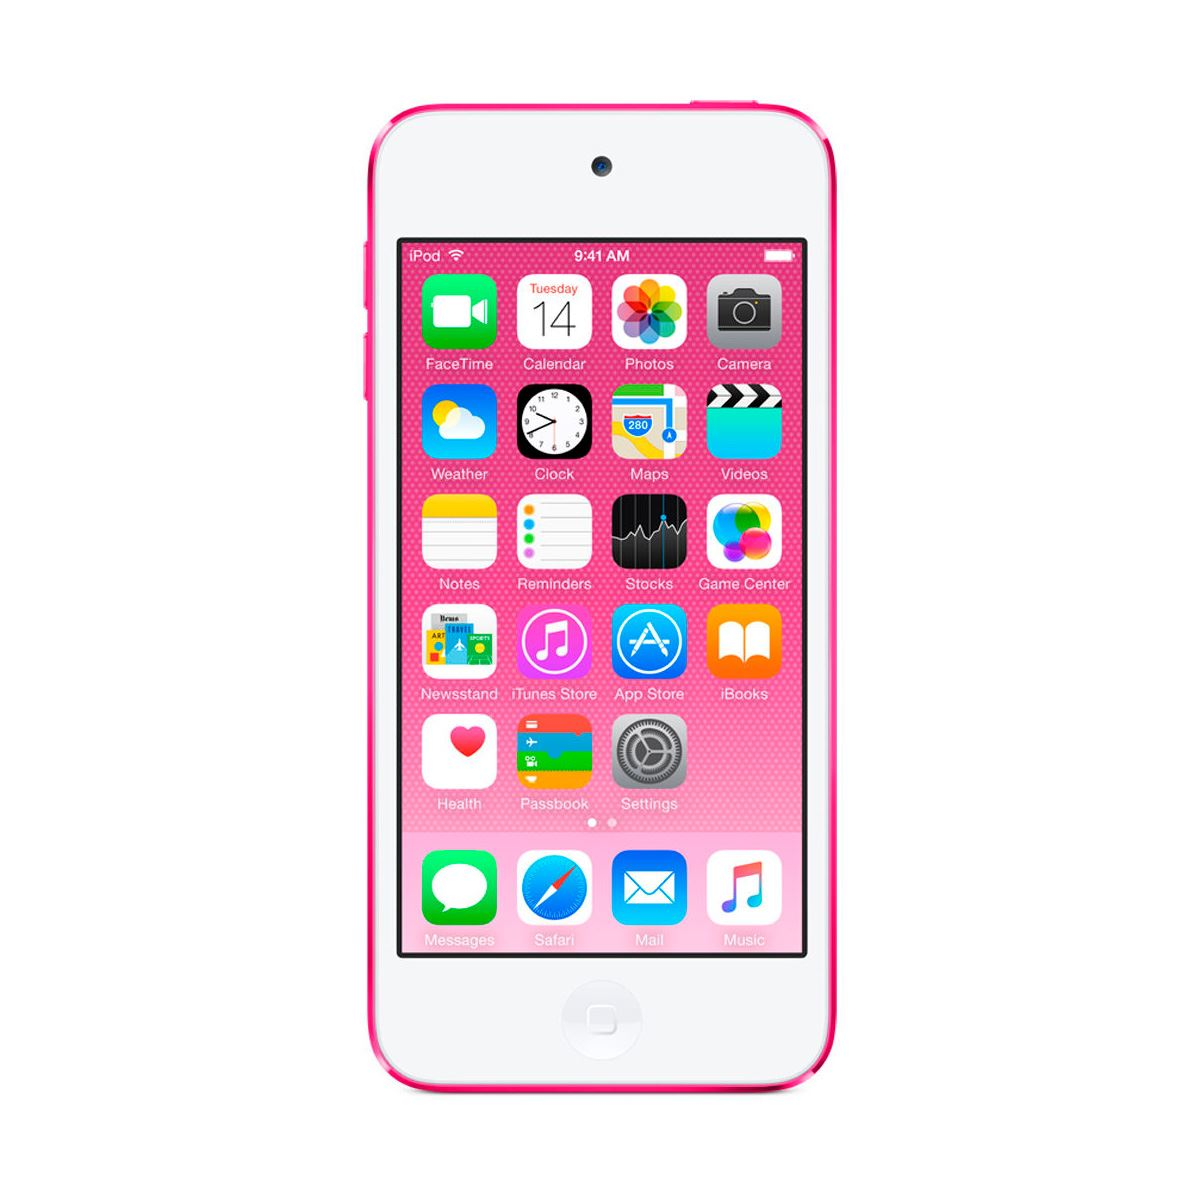 Ipod touch 32gb pink  - Sanborns